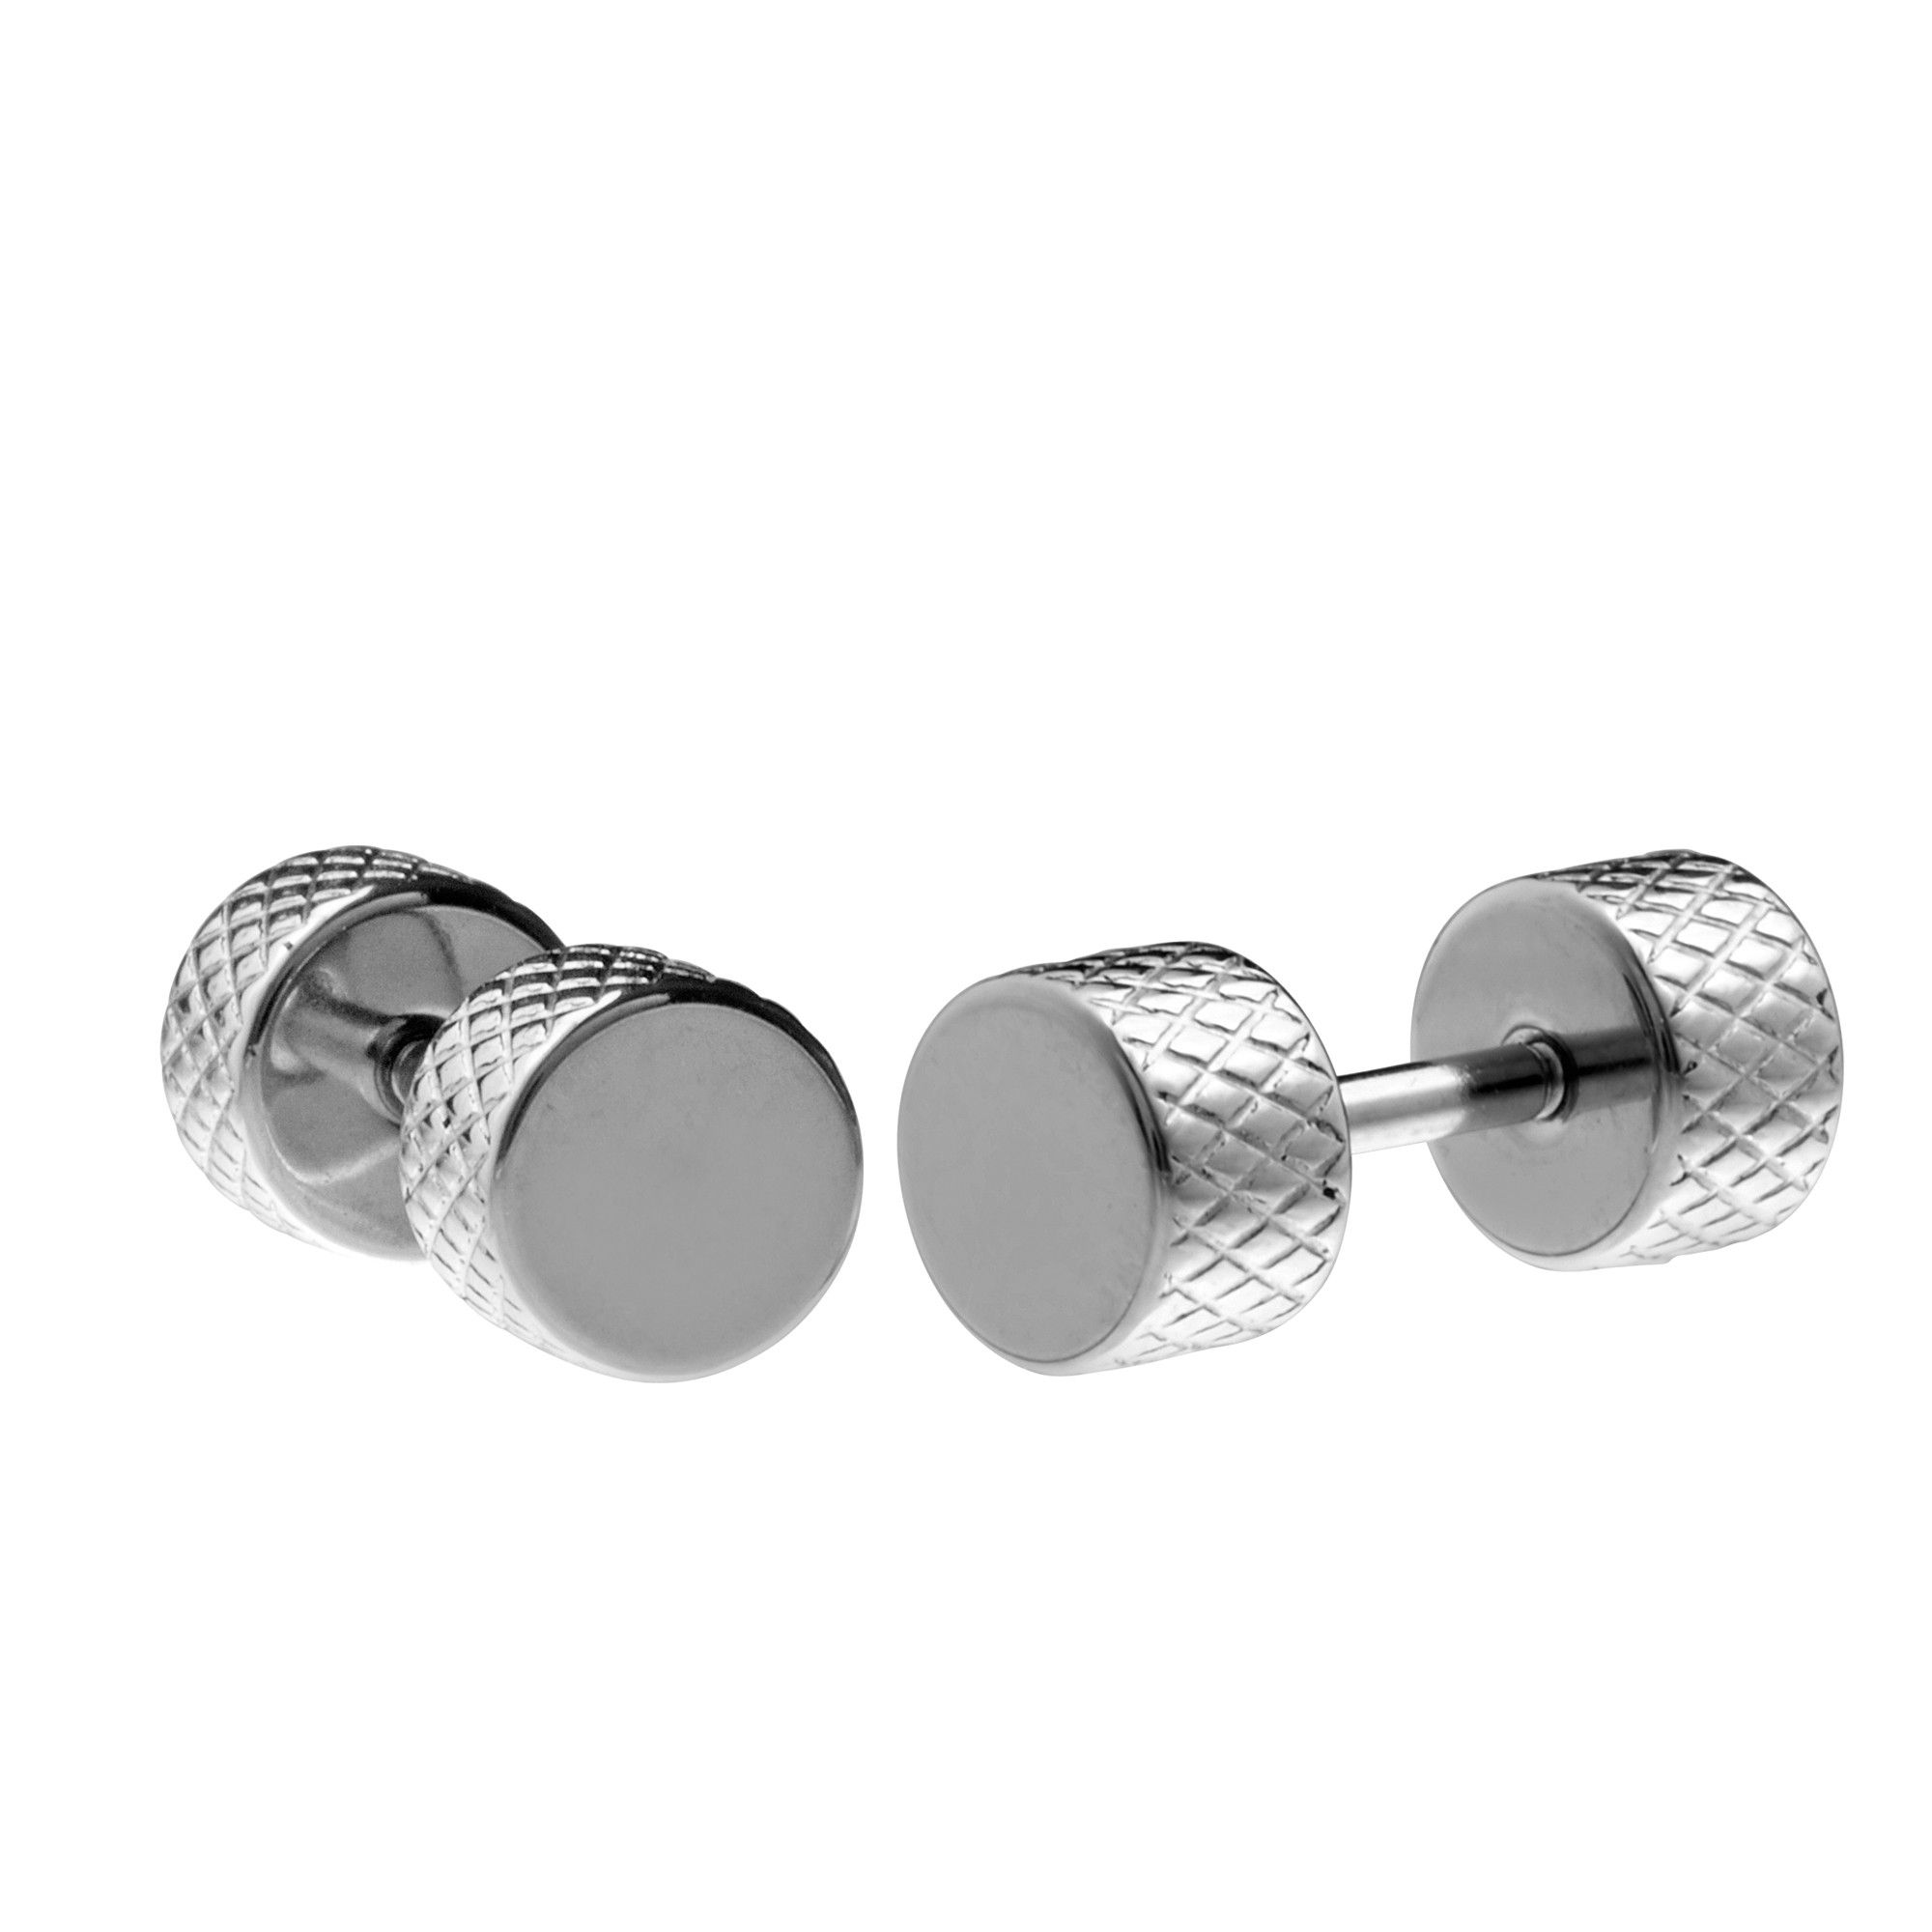 finish mensfashion men pin single earring steel fashion star stainless mens stud s mensjewellery shaped gold